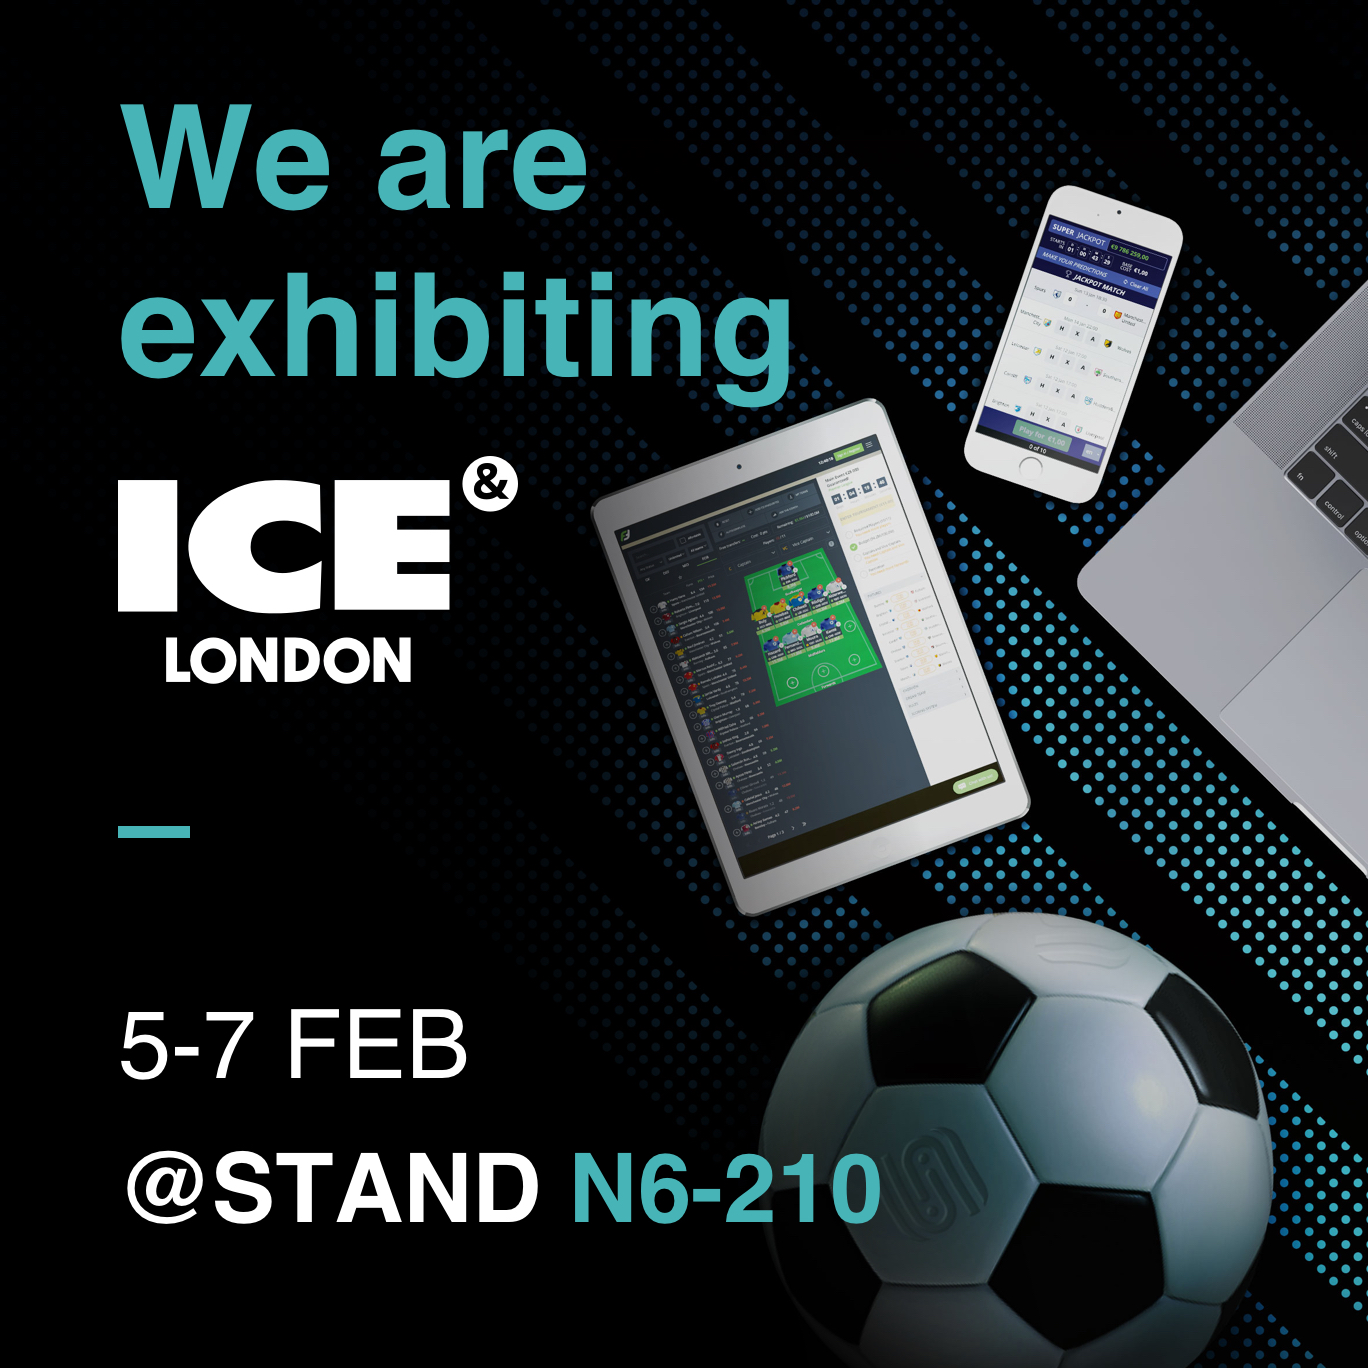 We're exhibiting at ICE London in February